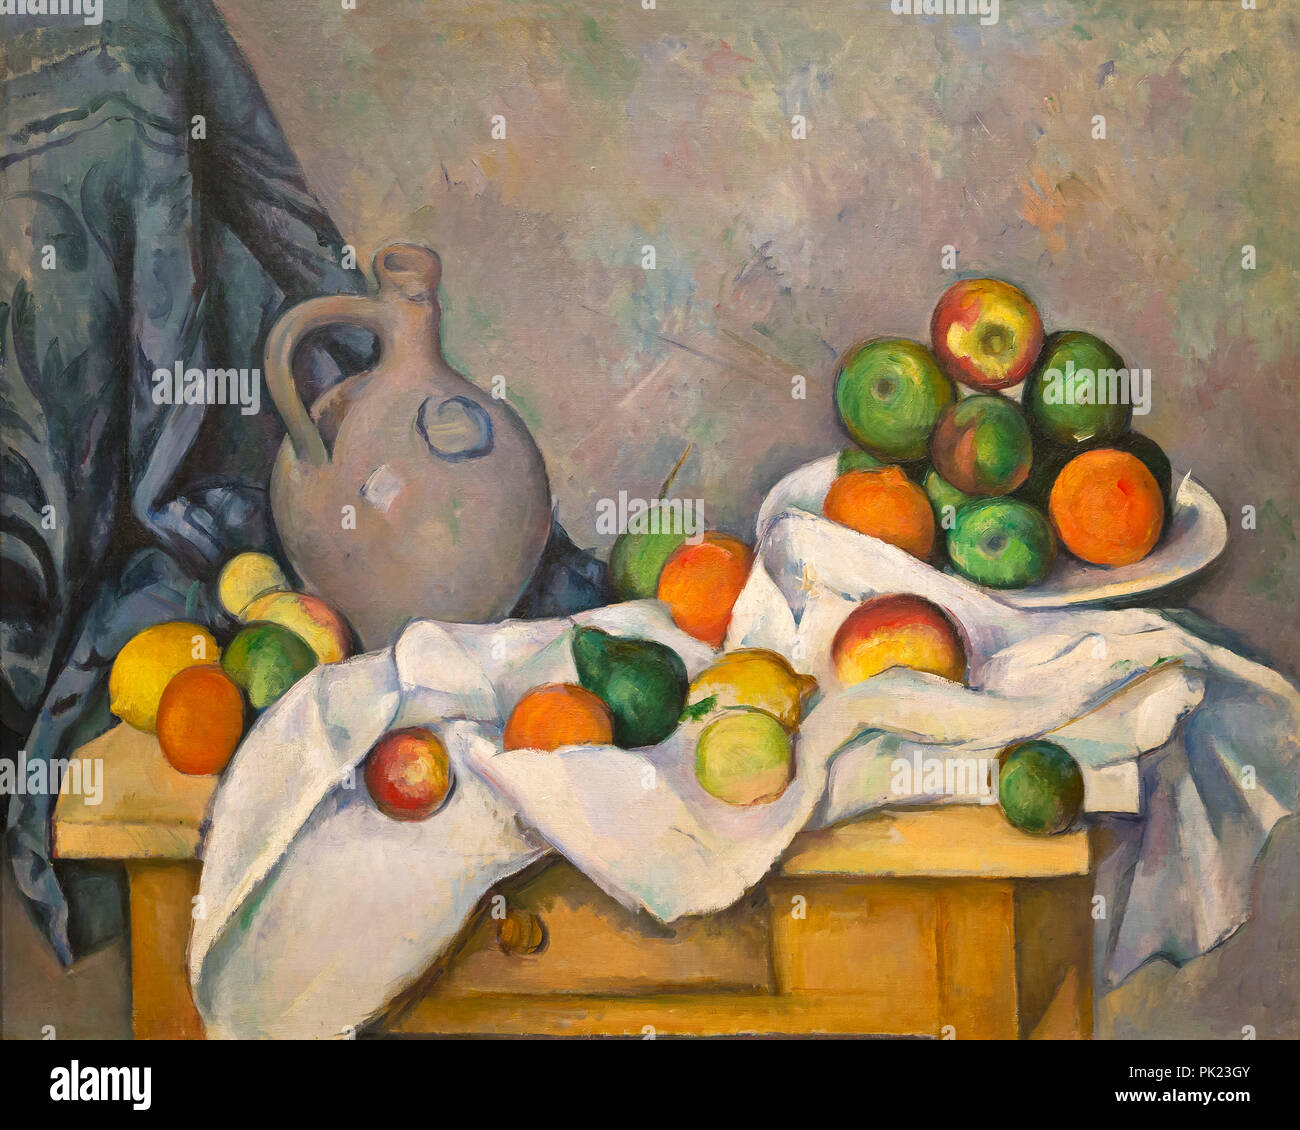 Curtain Pitcher and a Fruit Bowl, Paul Cezanne, 1893-1894, Art Institute of Chicago, Chicago, Illinois, USA, North America, - Stock Image